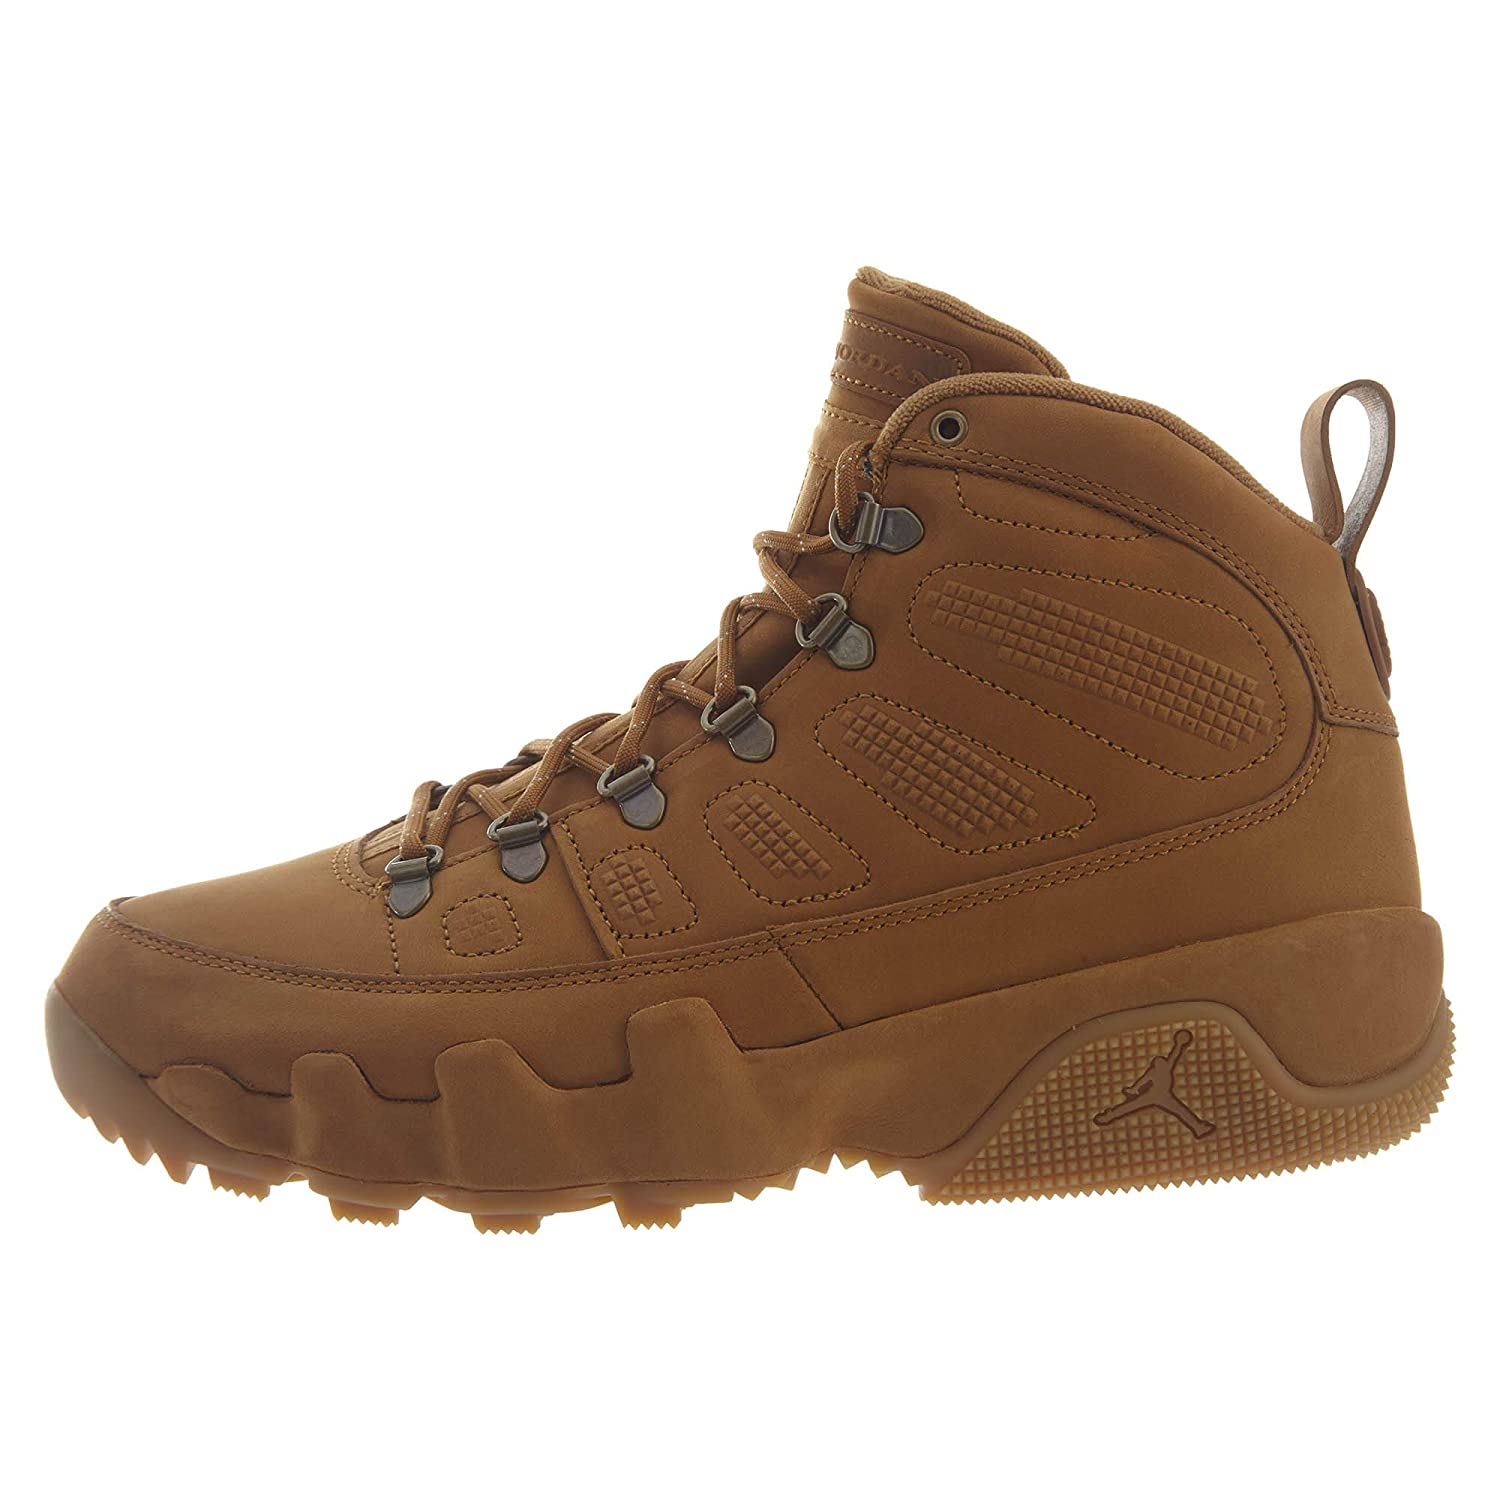 003dd3db45d Amazon.com | Jordan 9 Retro Boot Nrg Mens Style: AR4491-700 Size: 12 |  Fashion Sneakers